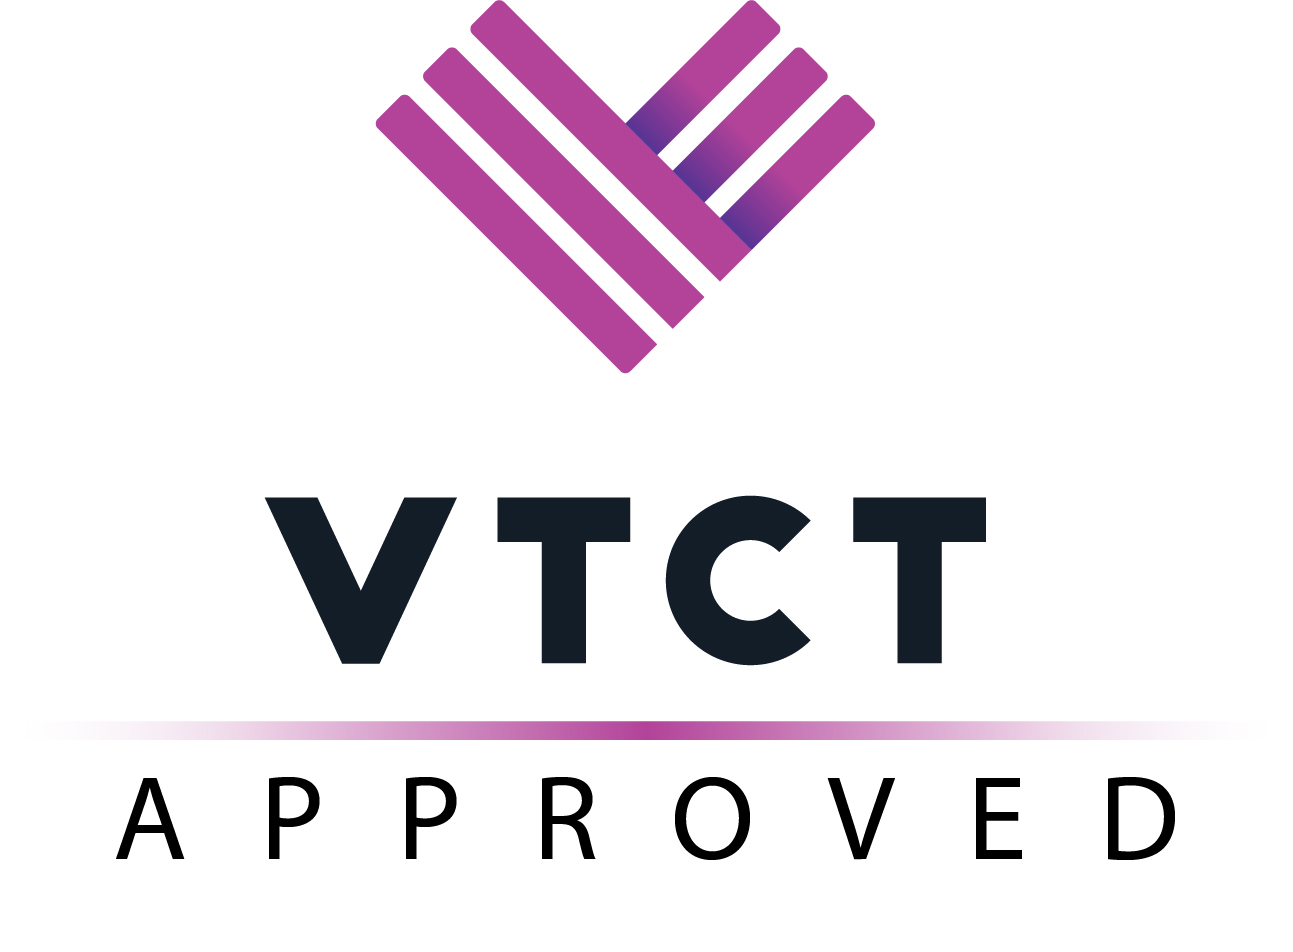 VTCT APPROVED logo